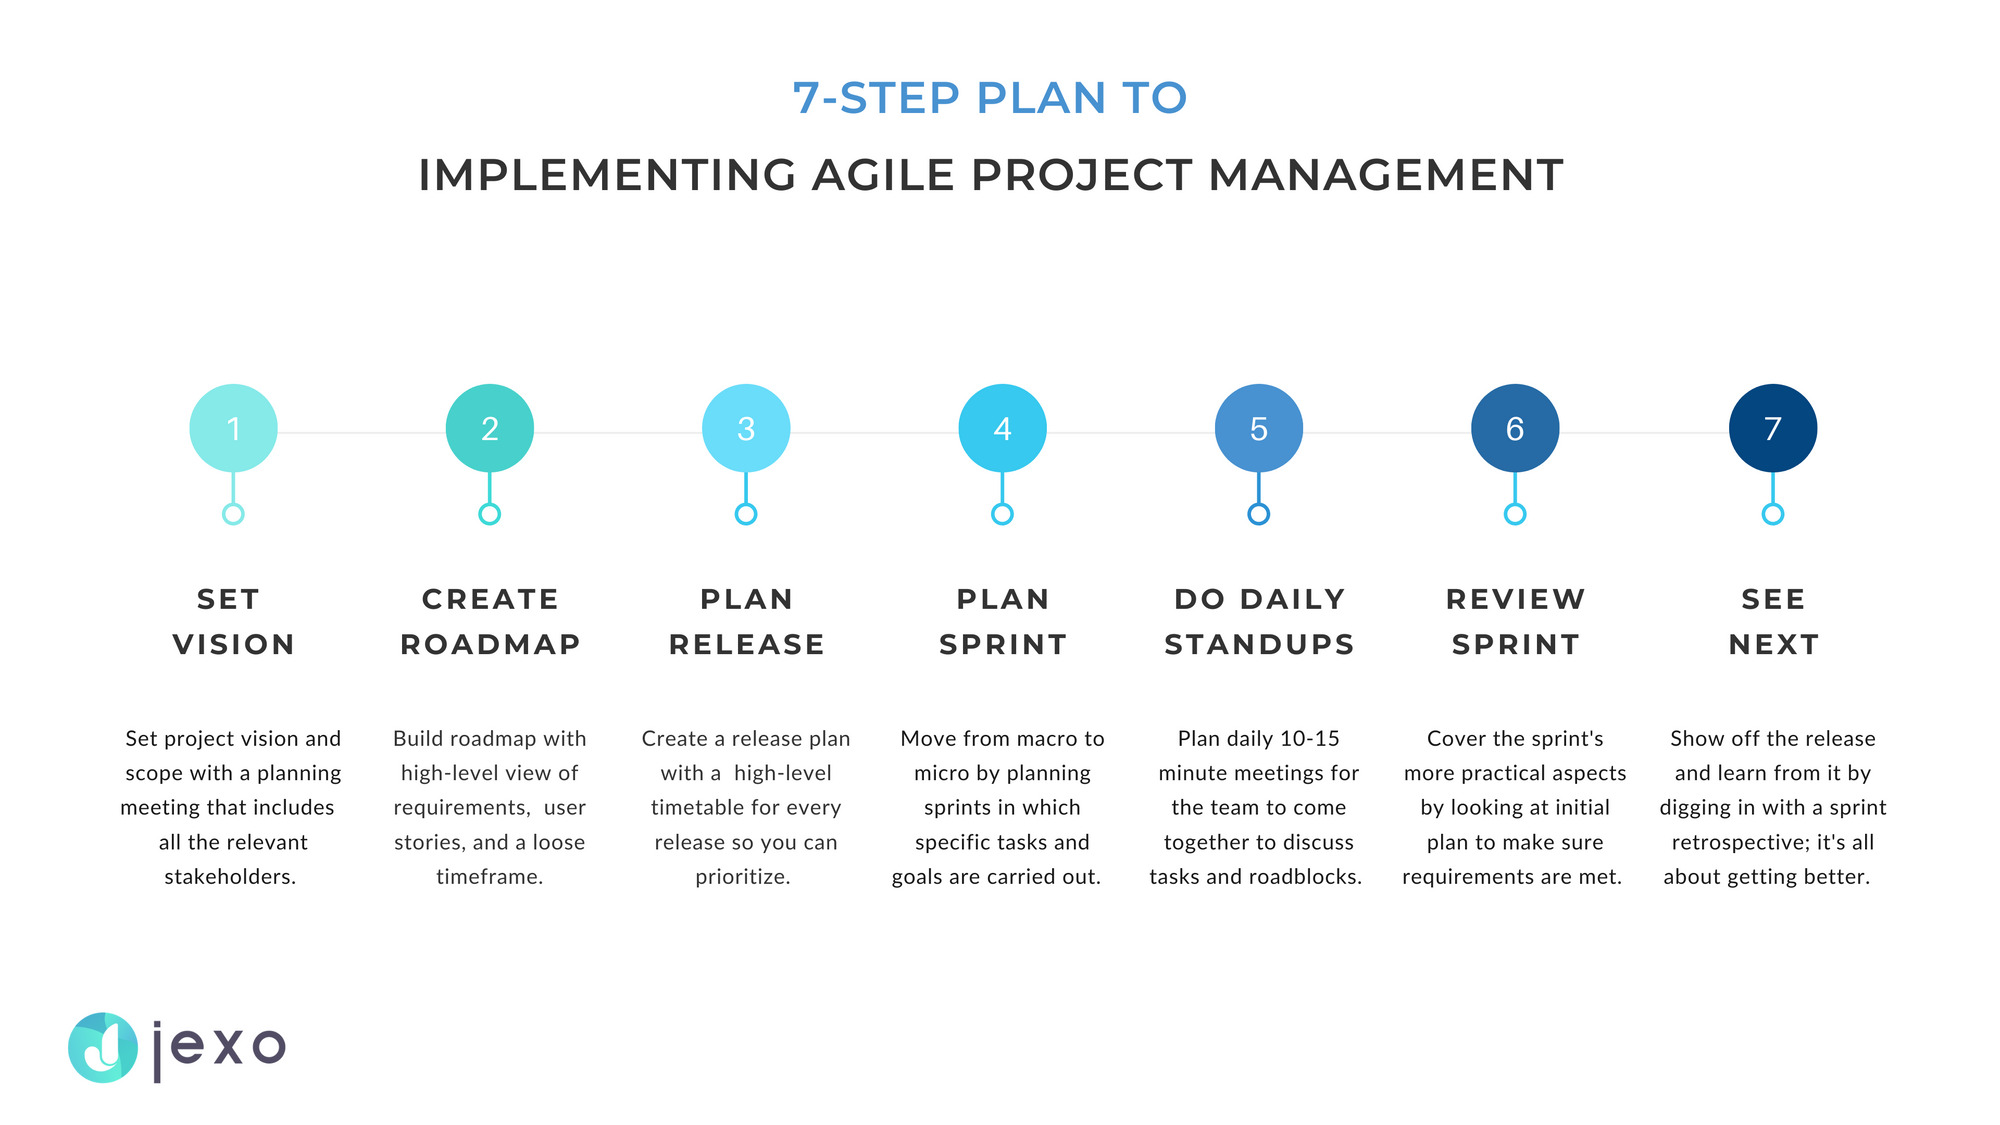 How to implement Agile project management in 7 steps